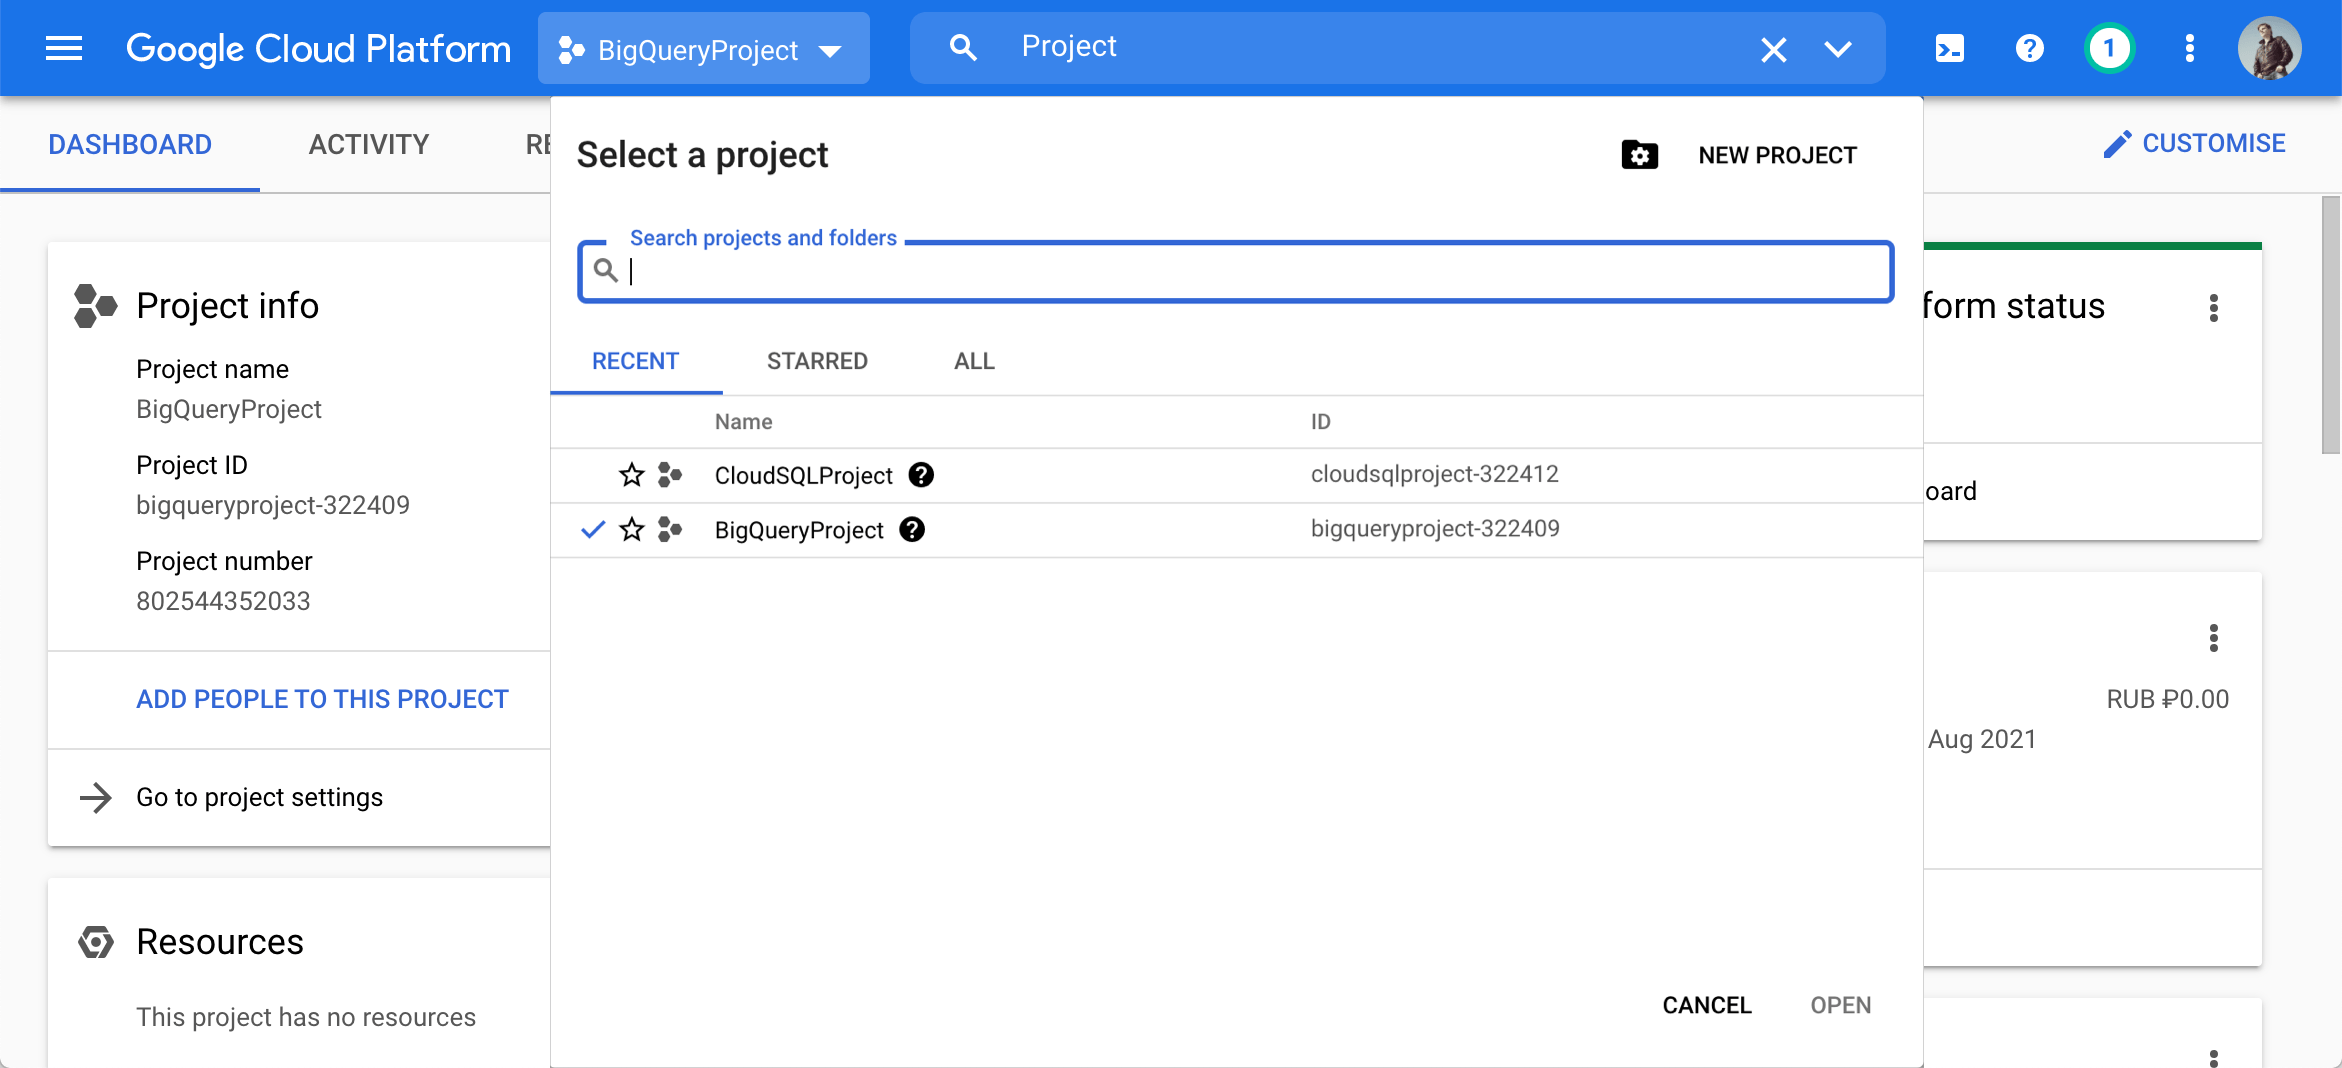 Create or select a project